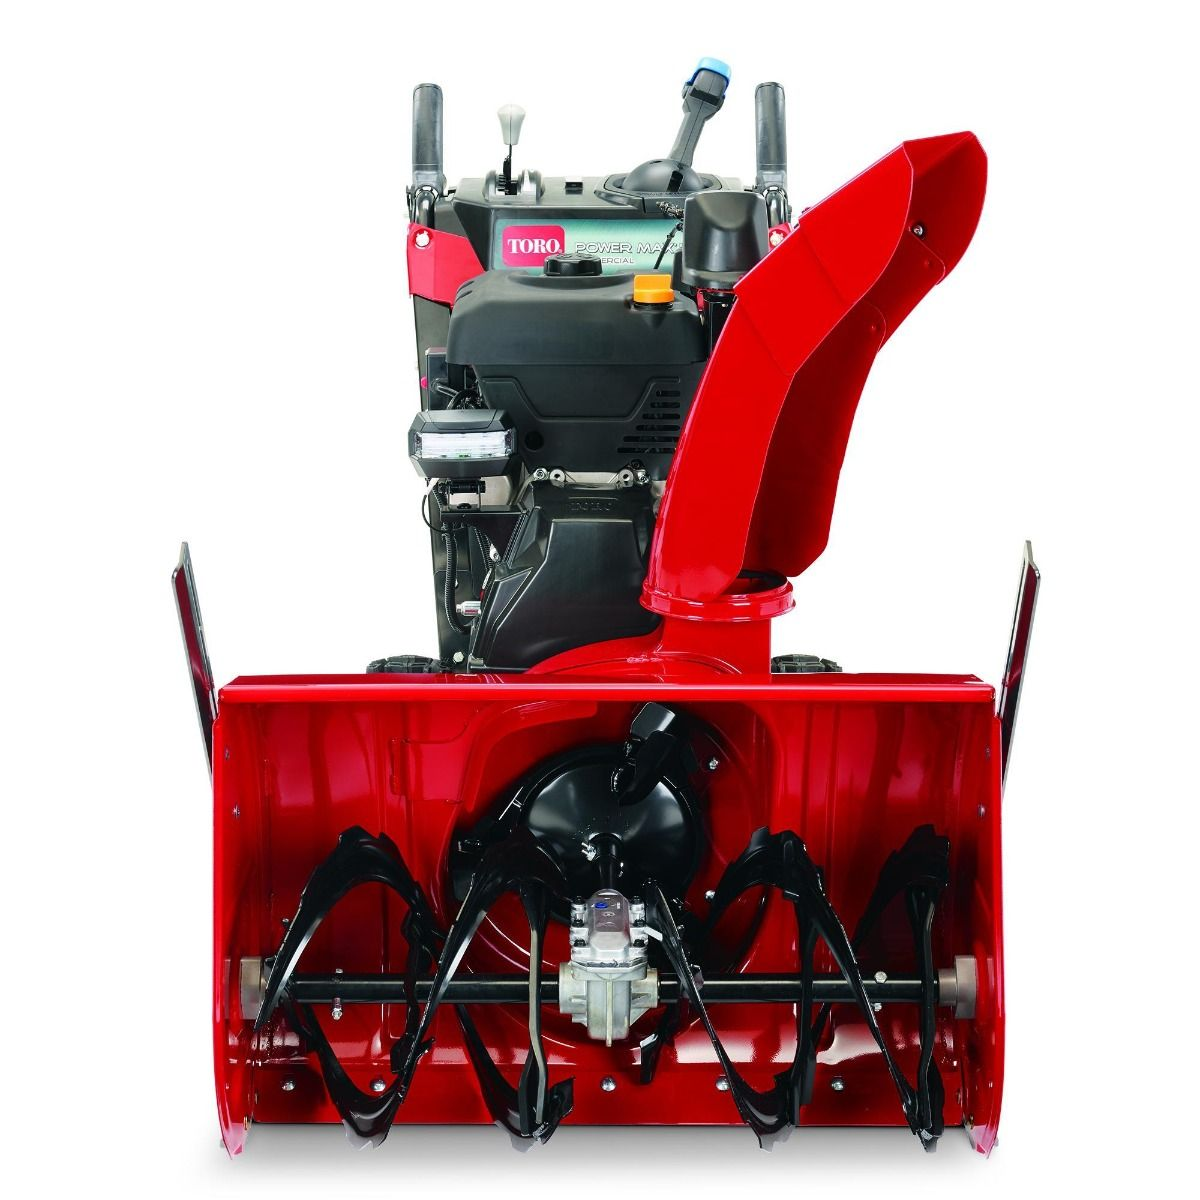 Toro 38843 Power Max HD 1428 OHXE Comm. Two-Stage Electric Start Snowblower